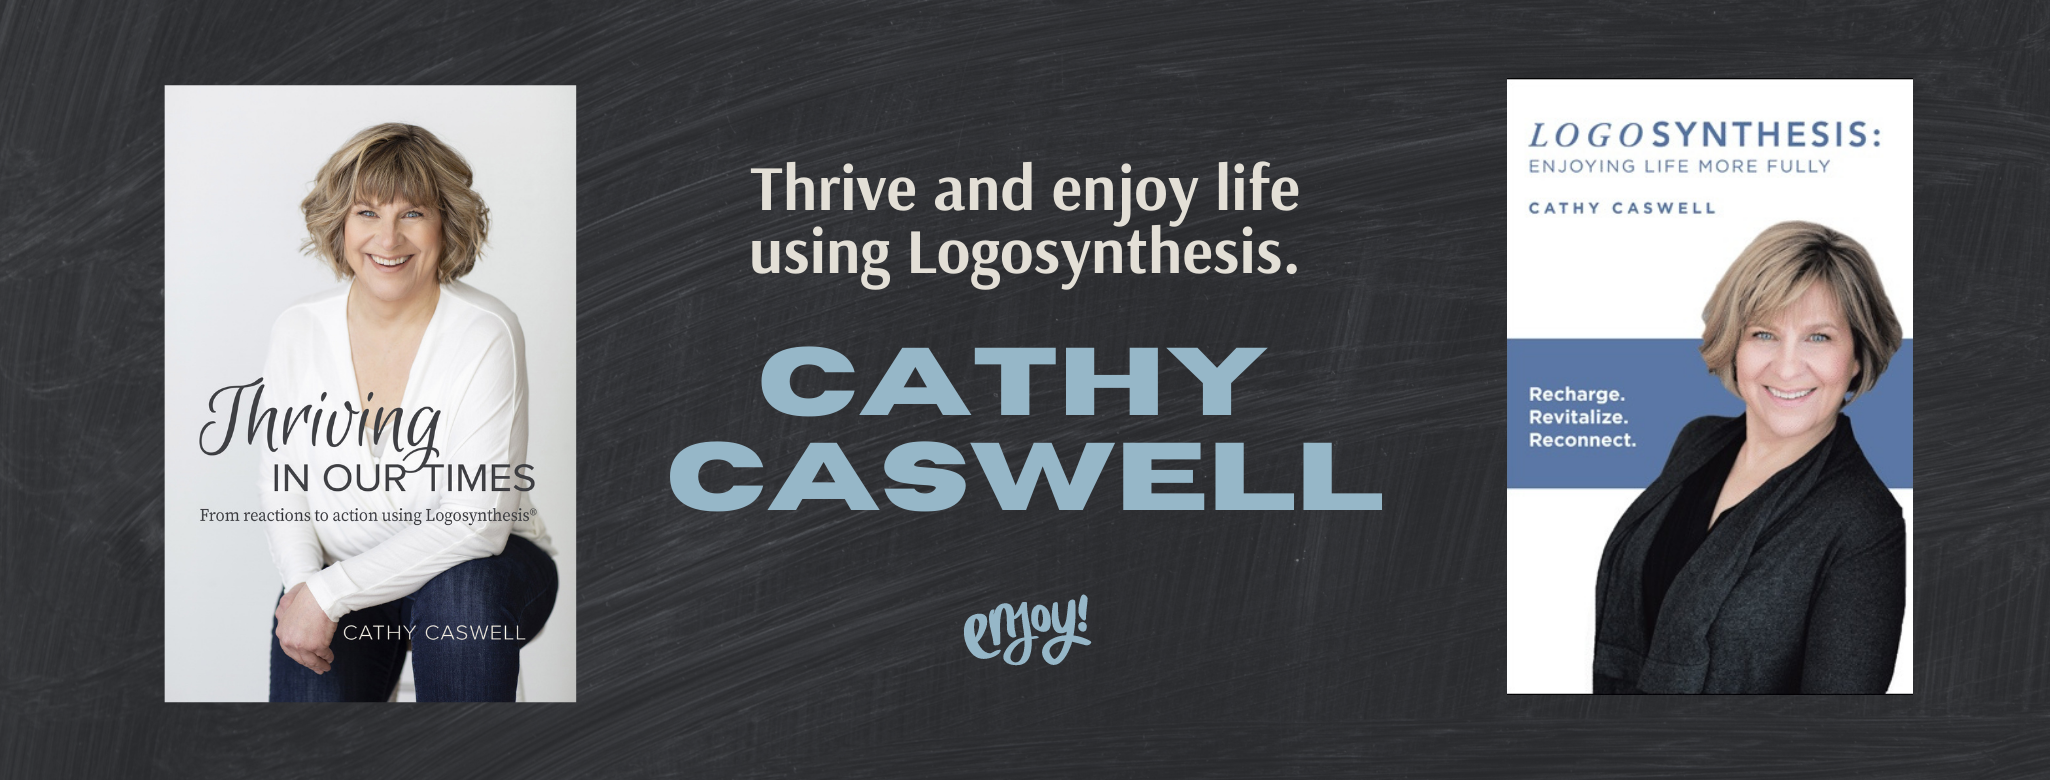 Cathy_Caswell_Logosynthesis